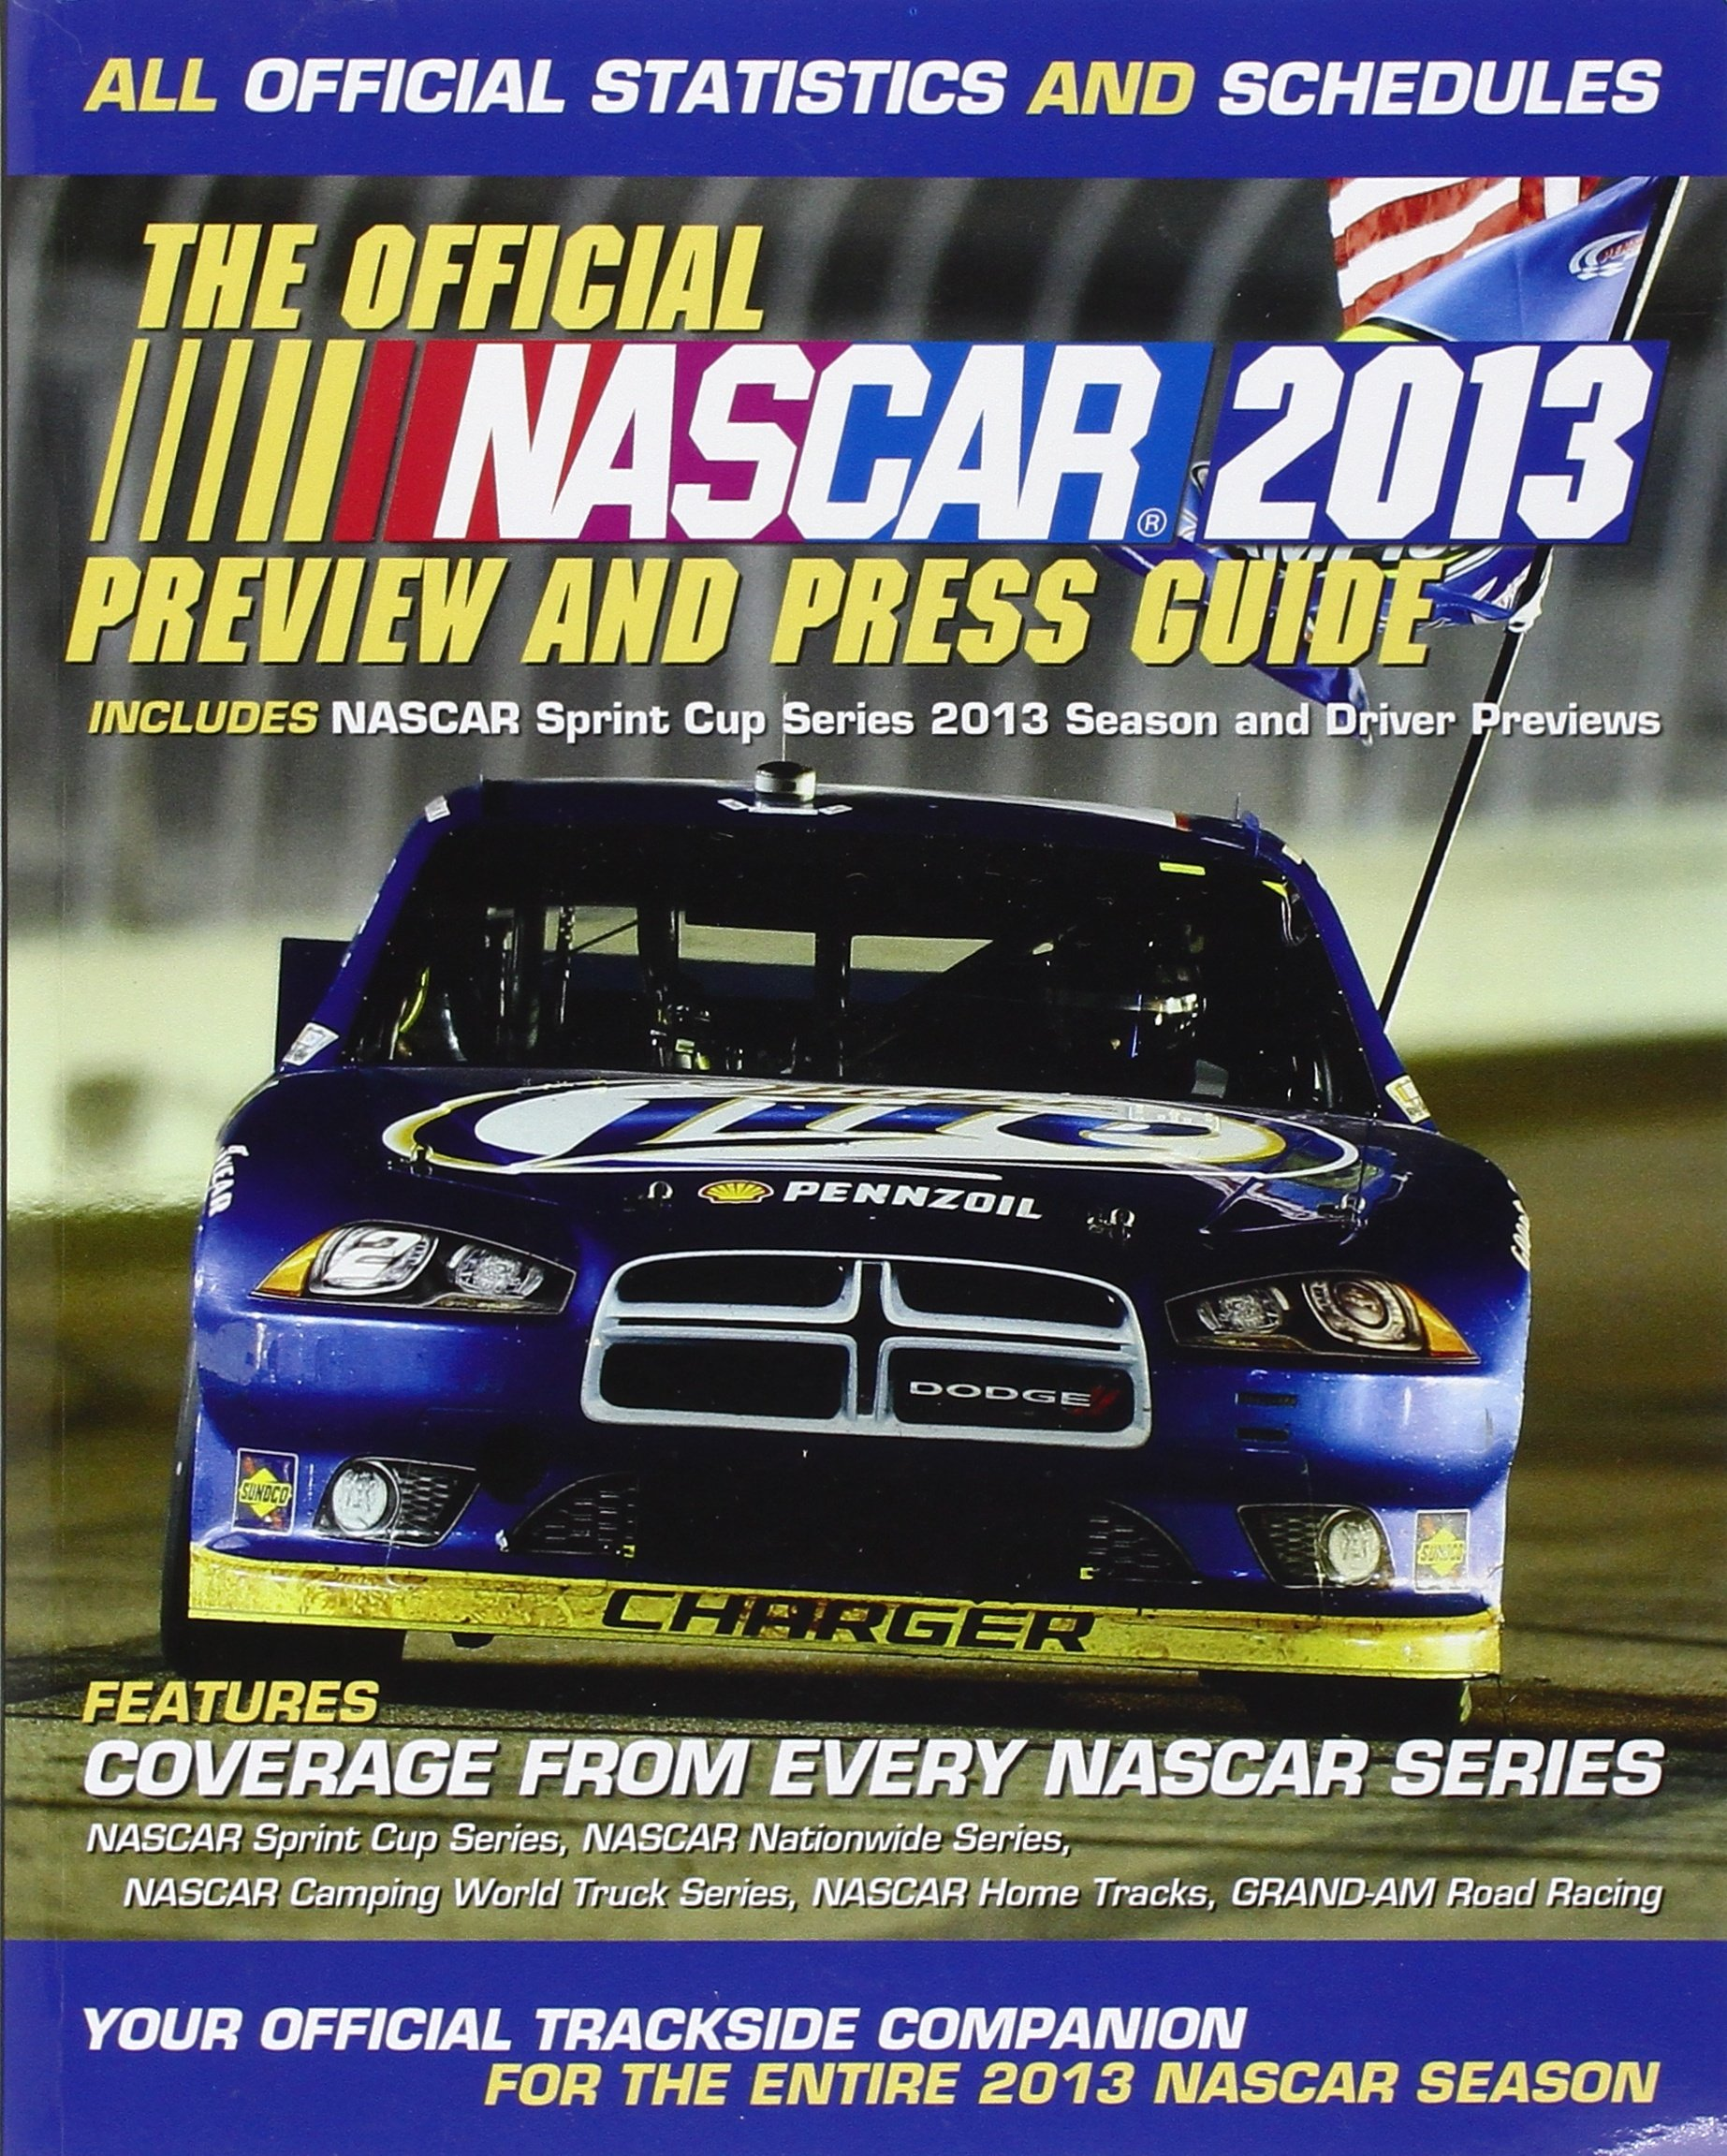 The Official Nascar 2013 Preview and Press Guide: All Official Statistics and Schedules